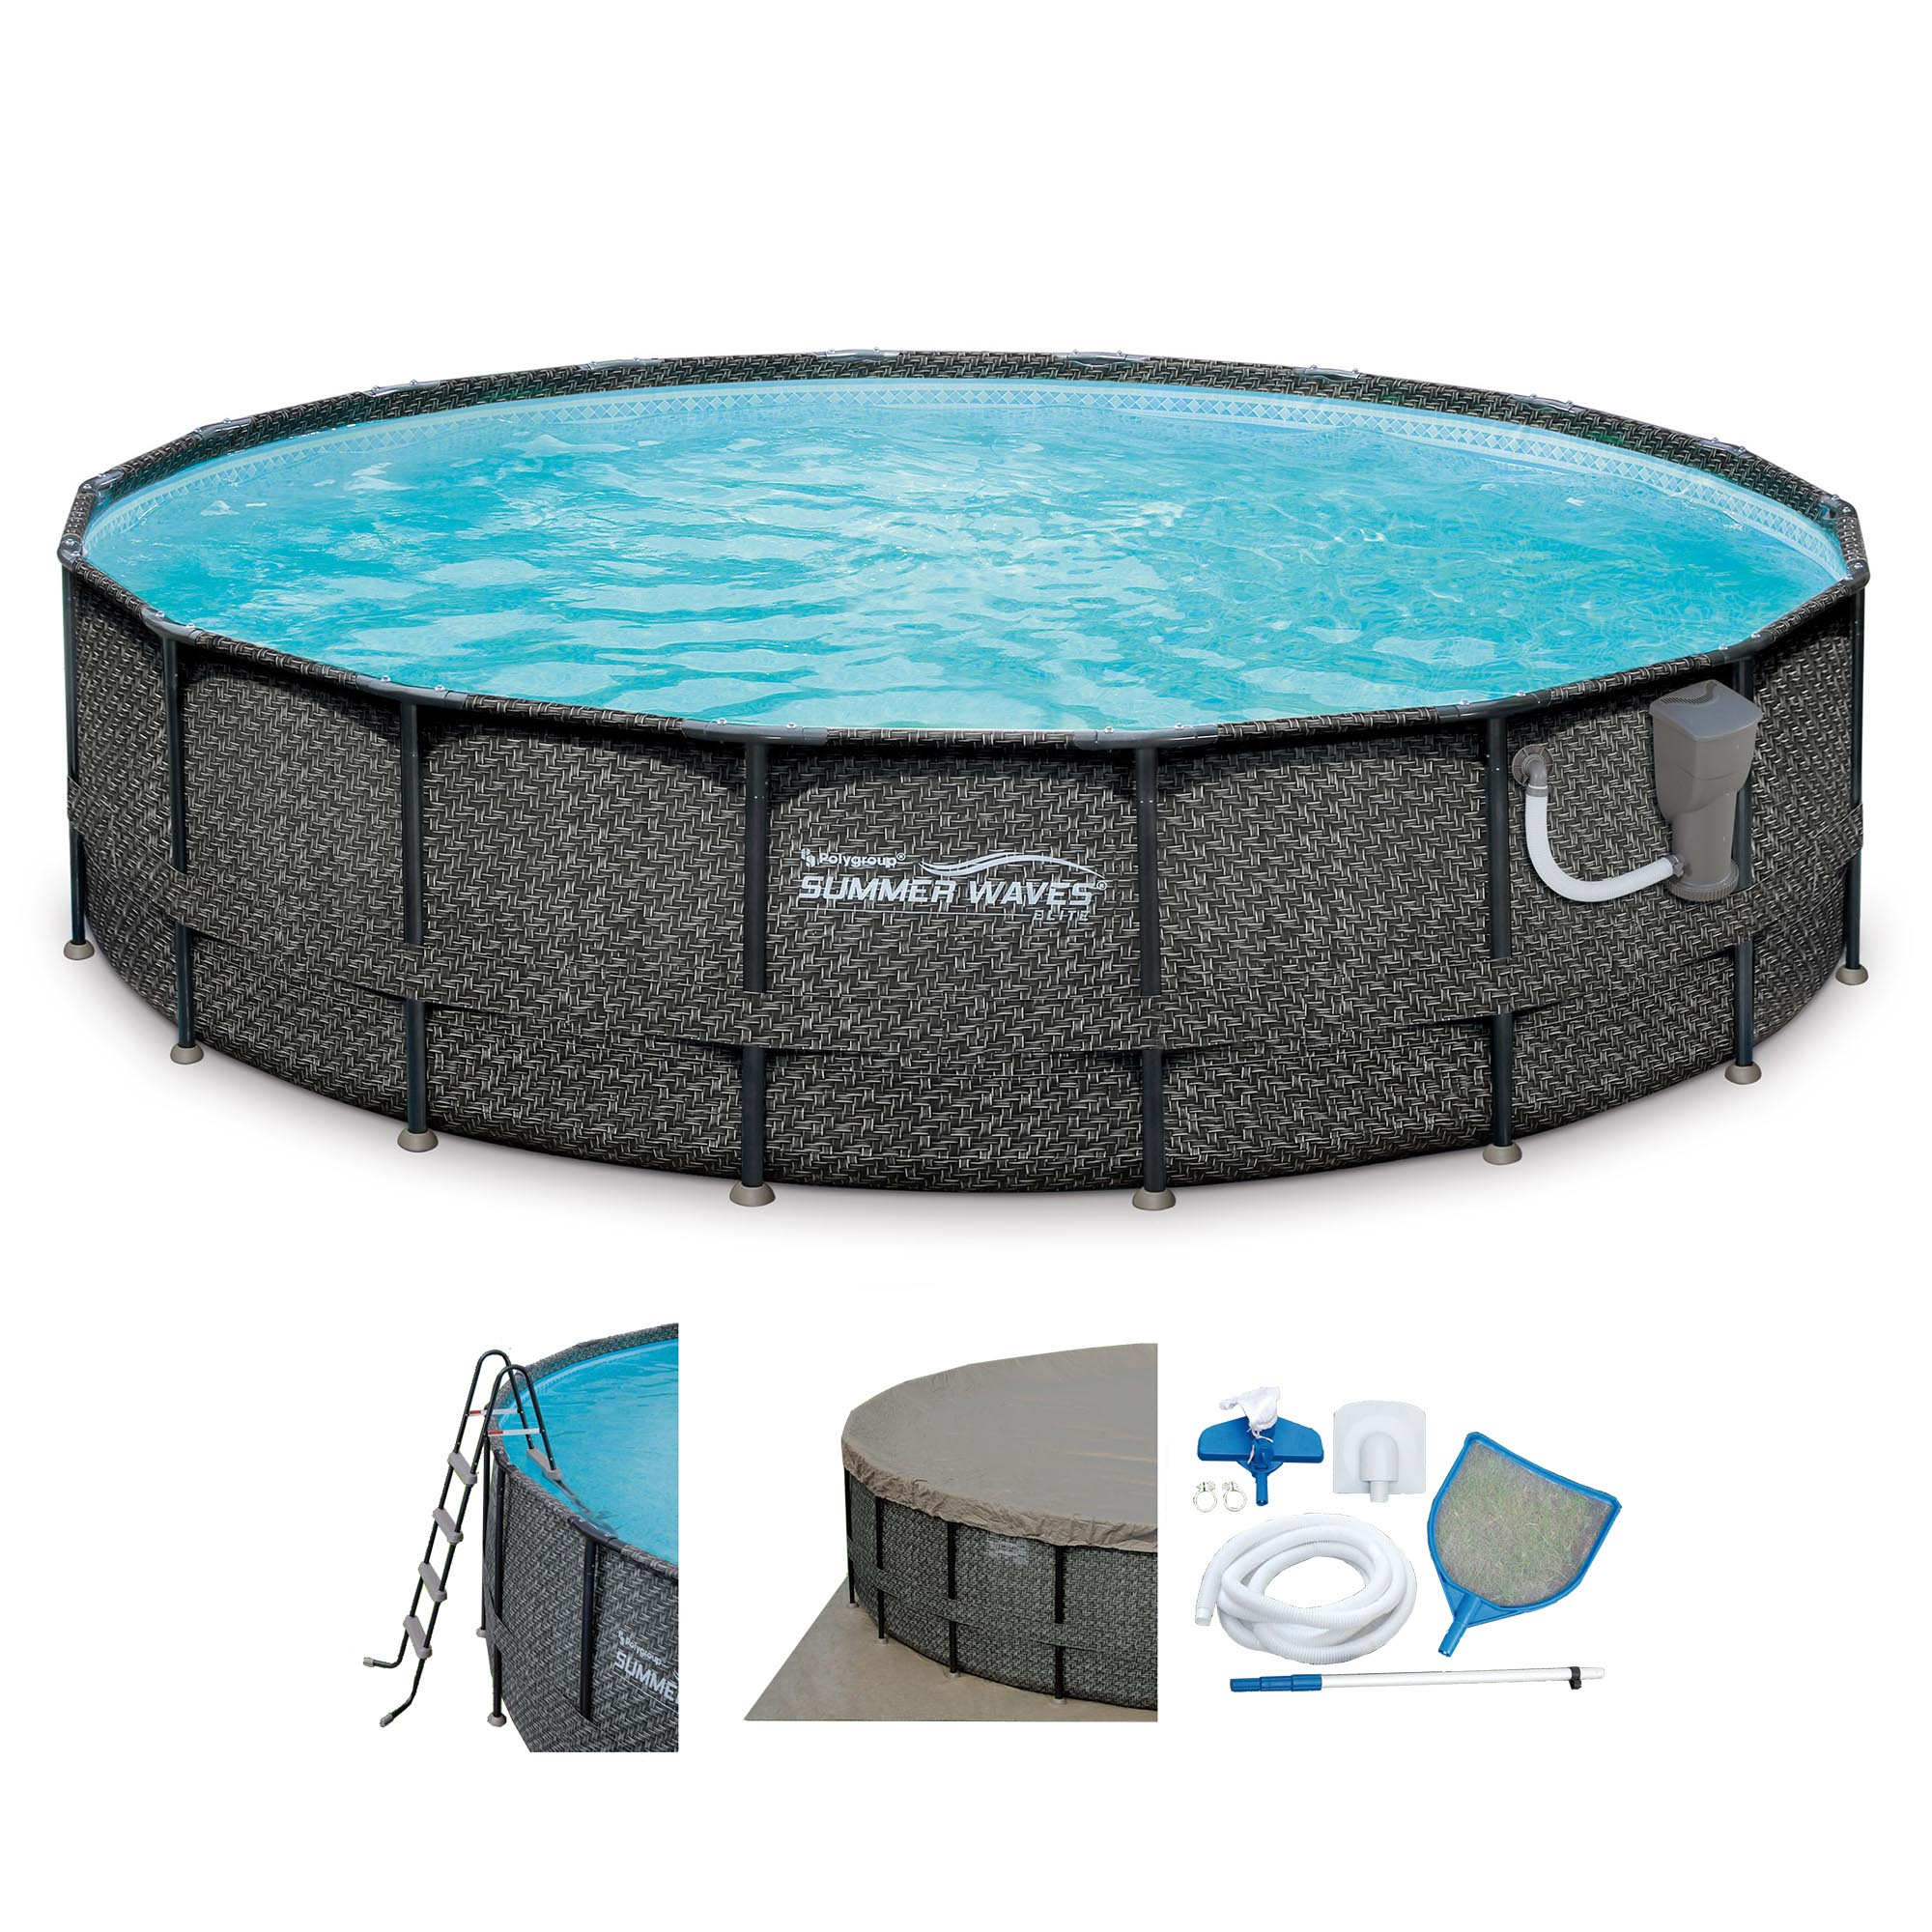 "Summer Waves Elite Wicker Print 20' x 48"" Above Ground Frame Pool Set w/ Pump"